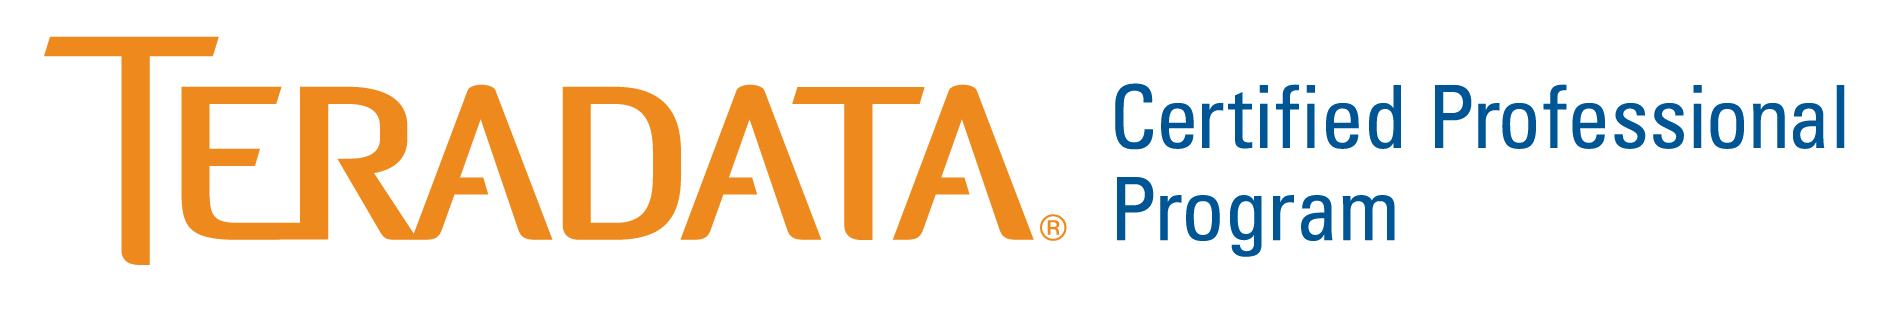 Teradata Database Dba Exam